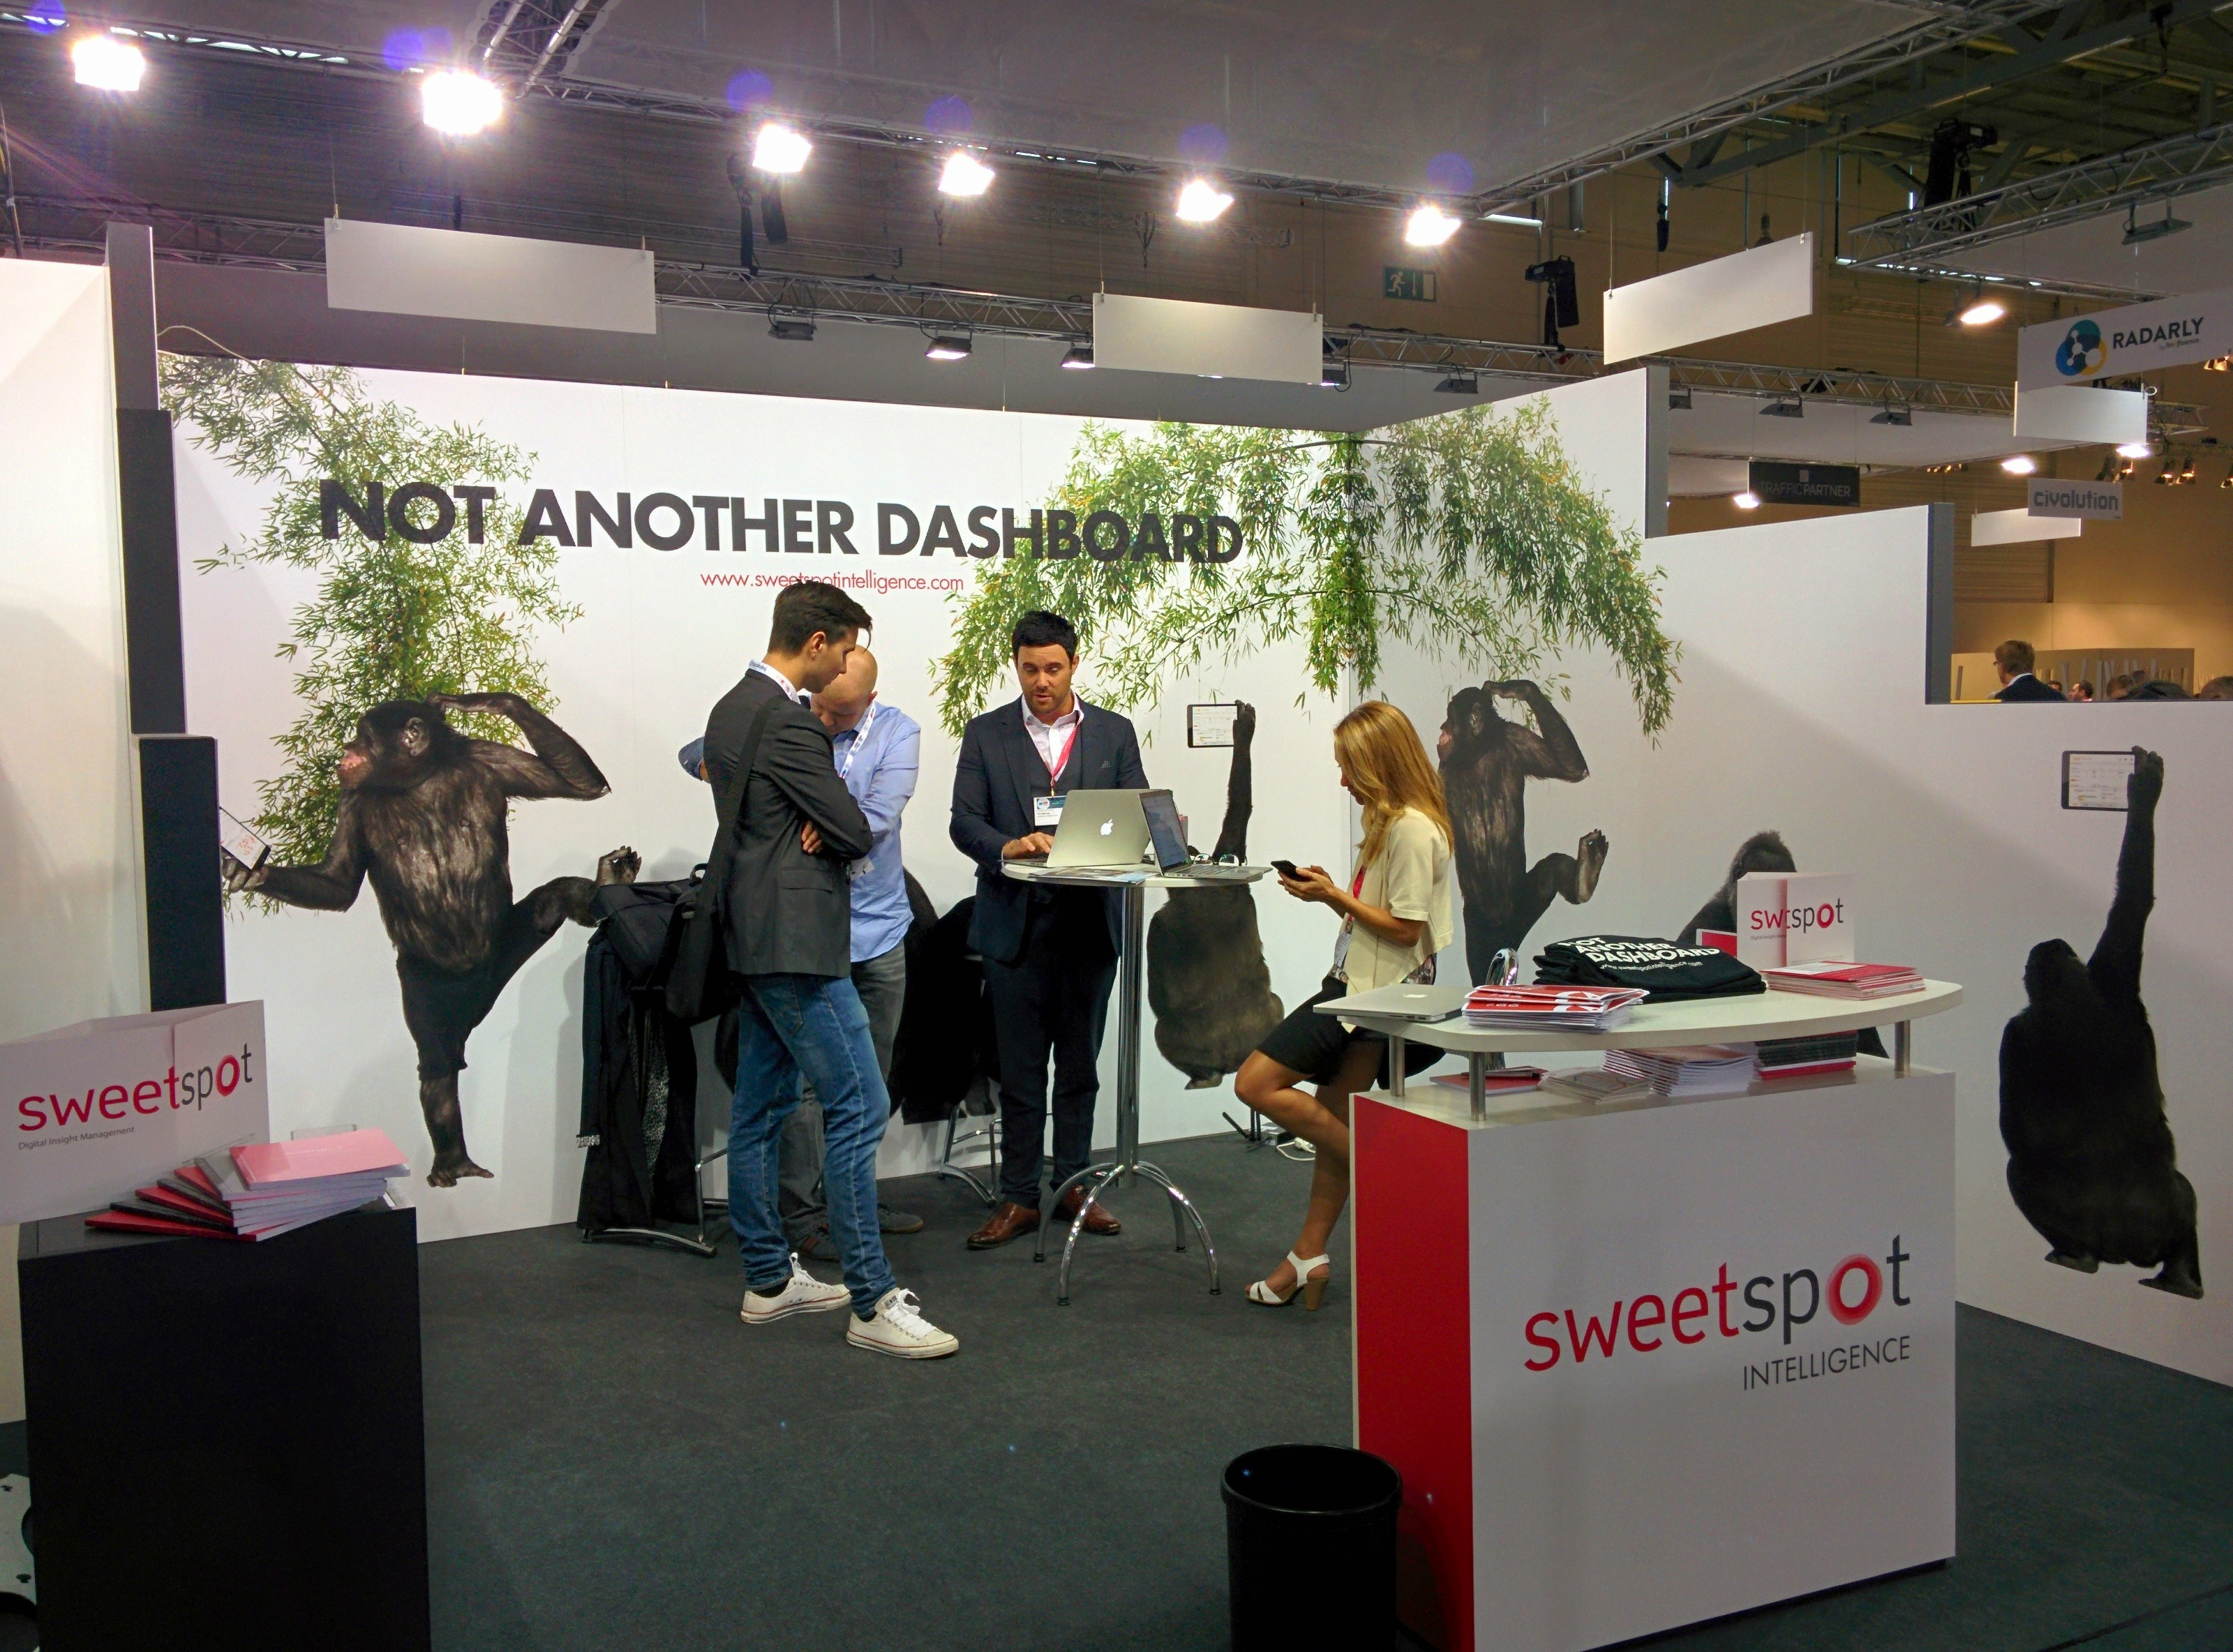 Sweetspot Intelligence at dmexco 2014